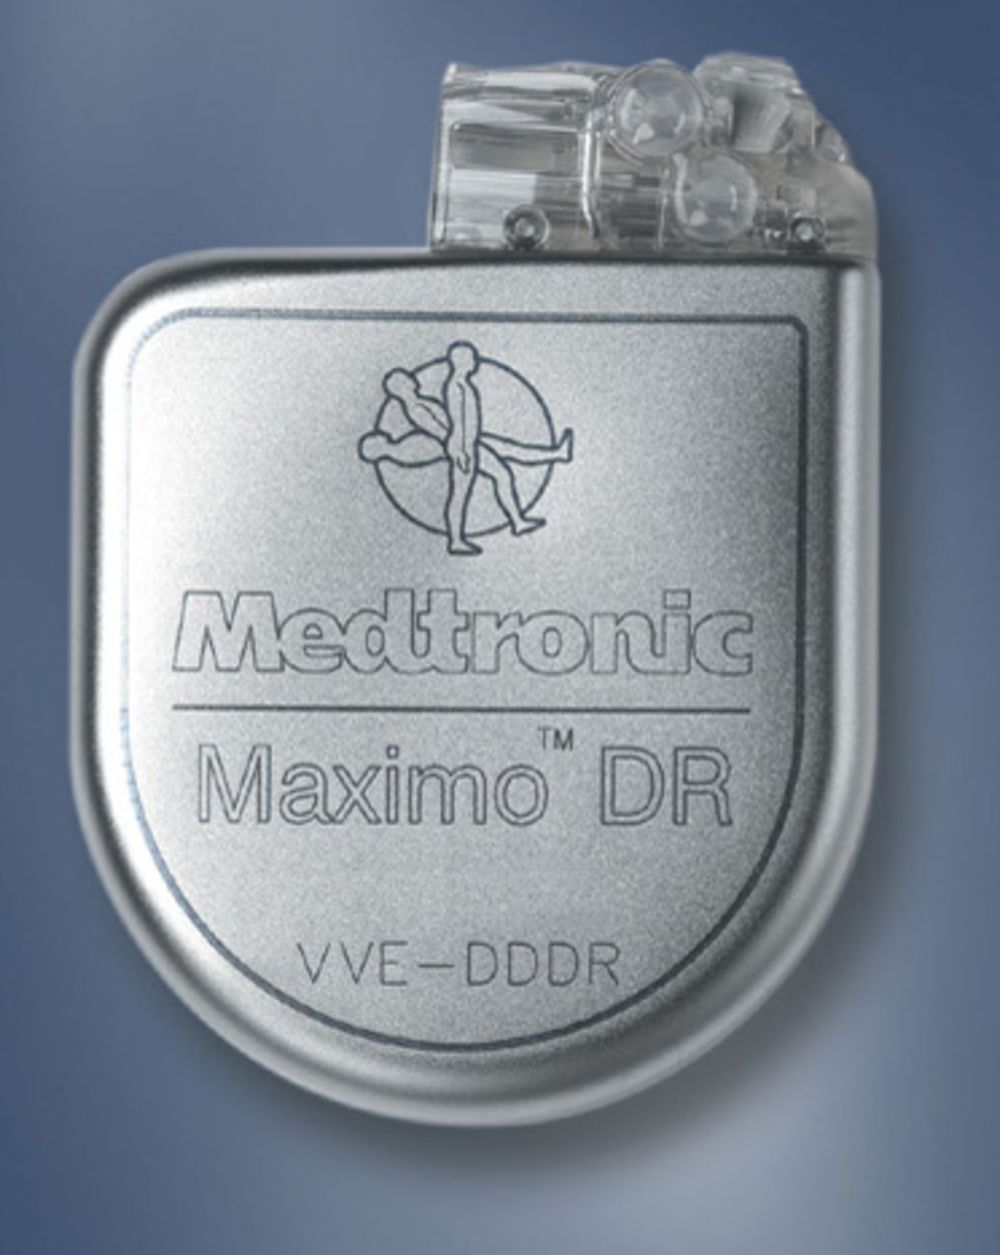 An ICD can deliver a shock to the heart. Modern ICDs can also function as pacemakers. The Medtronic Maximo was discovered vulnerable to cyberattacks.